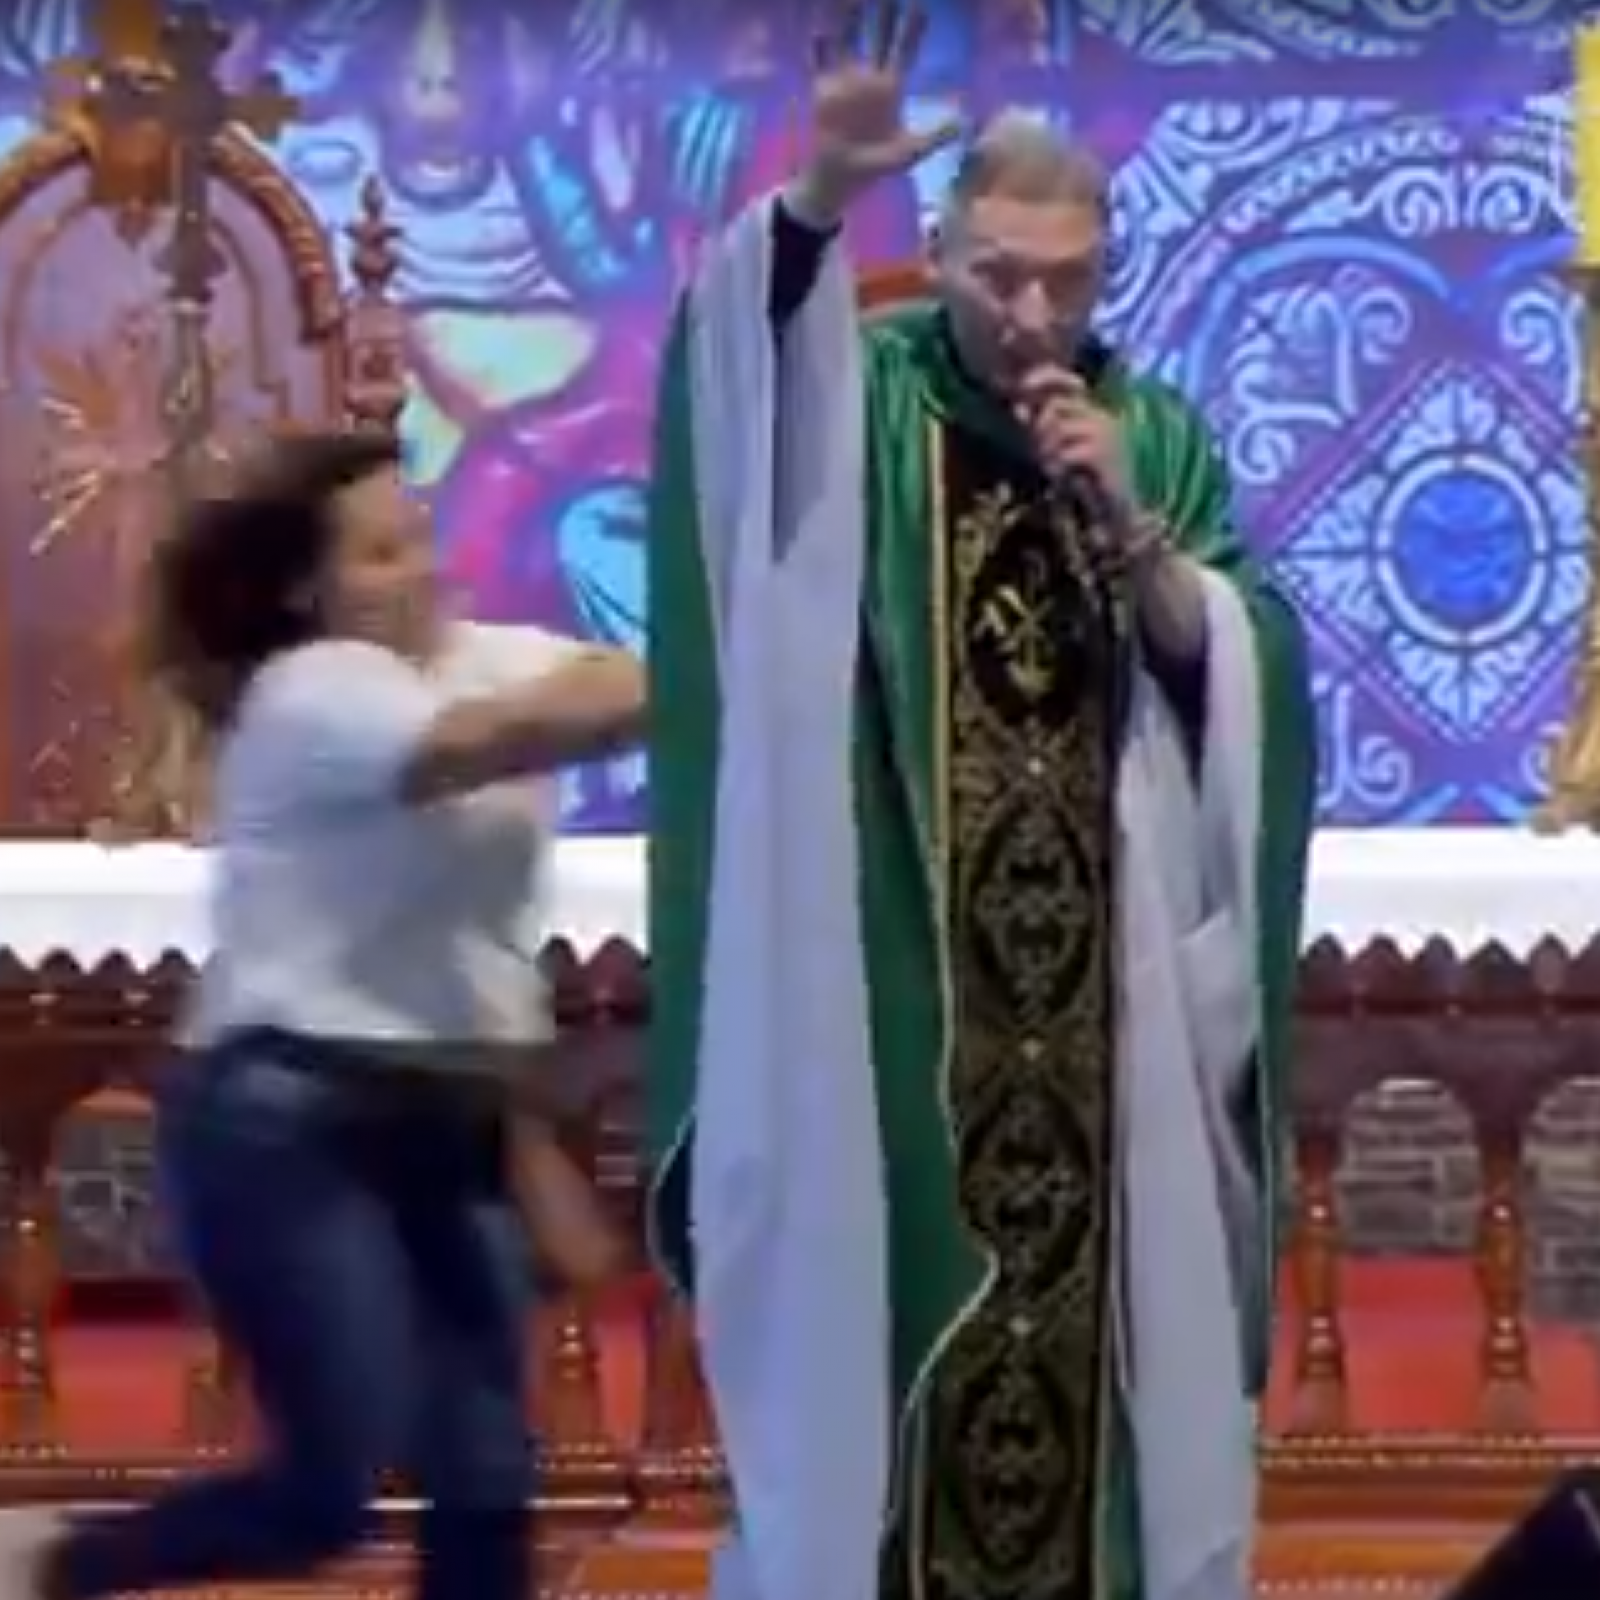 Video: Woman Violently Pushes Priest Off Stage During Mass